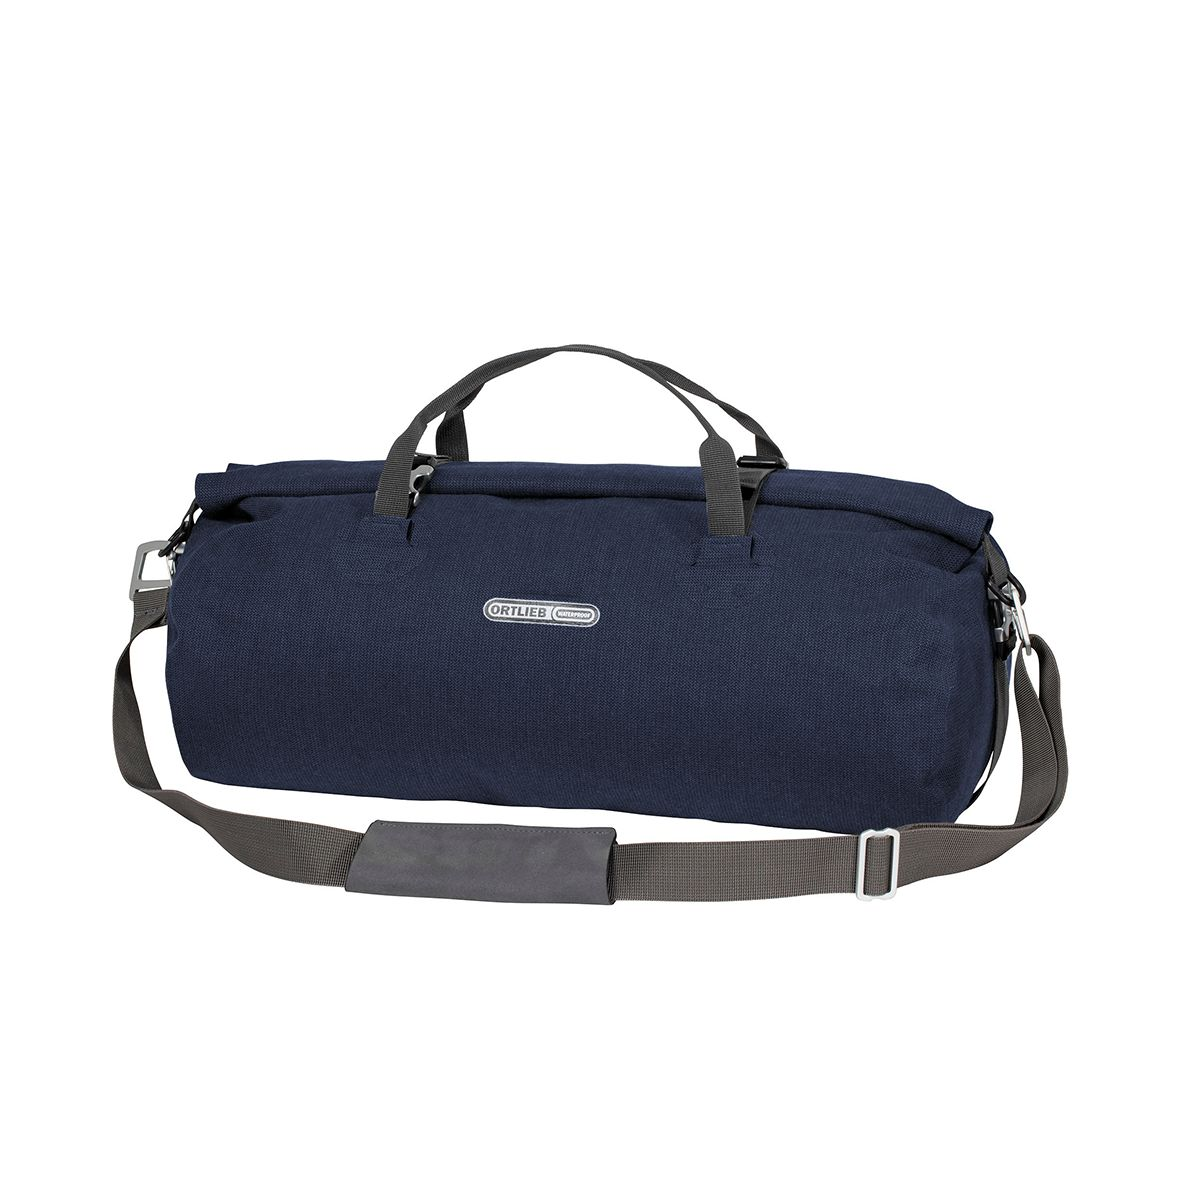 RACK-PACK URBAN 31 bag